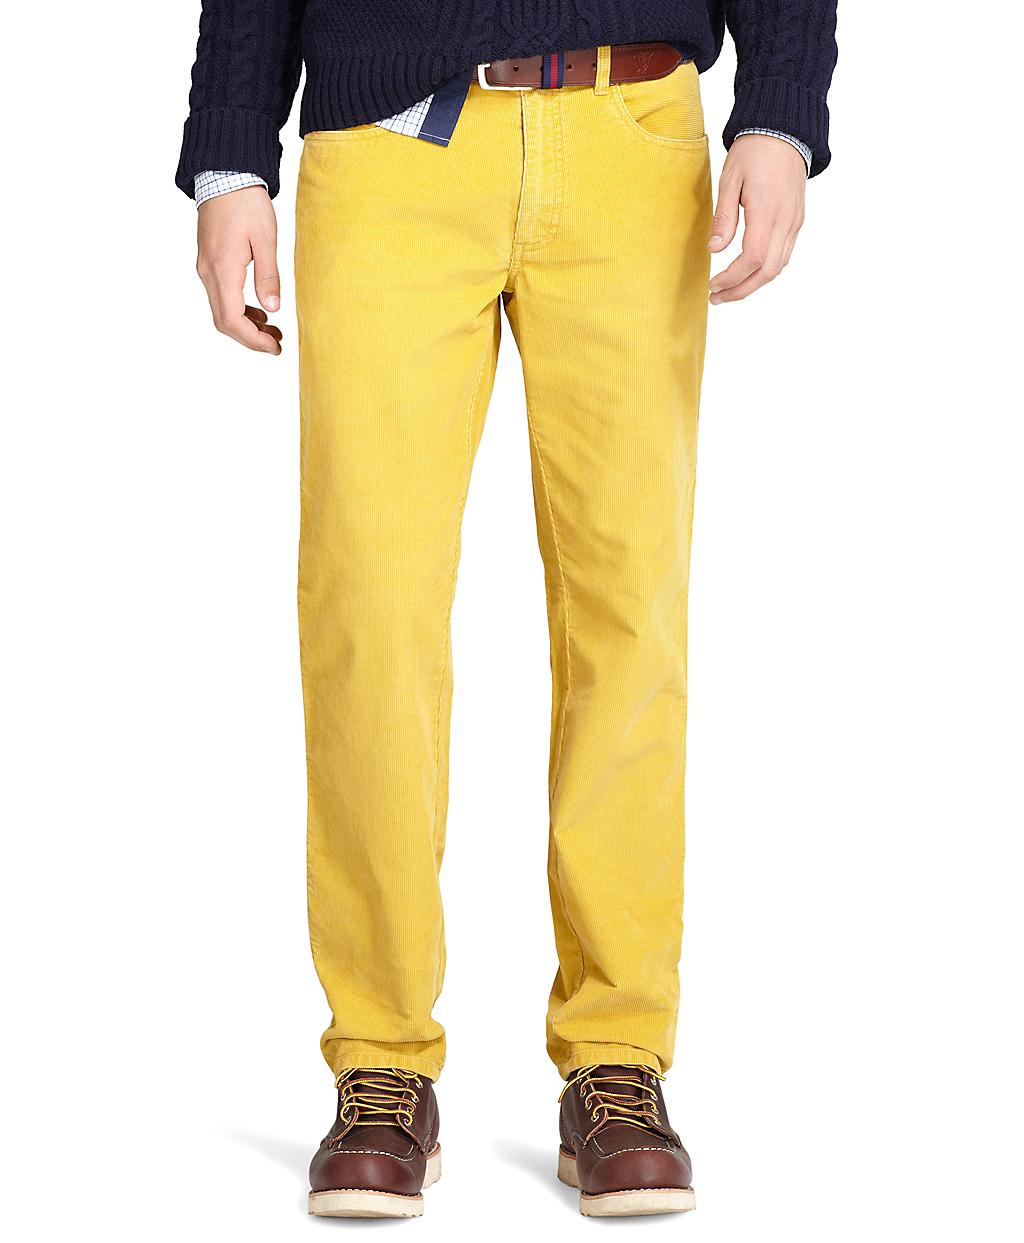 Pair yellow pants with blue, gray, black, white and other such muted tones. When going for casual wear, slip into a pair of cotton yellow pants. Those are comfy and easy to manage. Yellow pants look best with brown suede shoes. Black and purple can be opted as well but none of them can beat brown at its game.